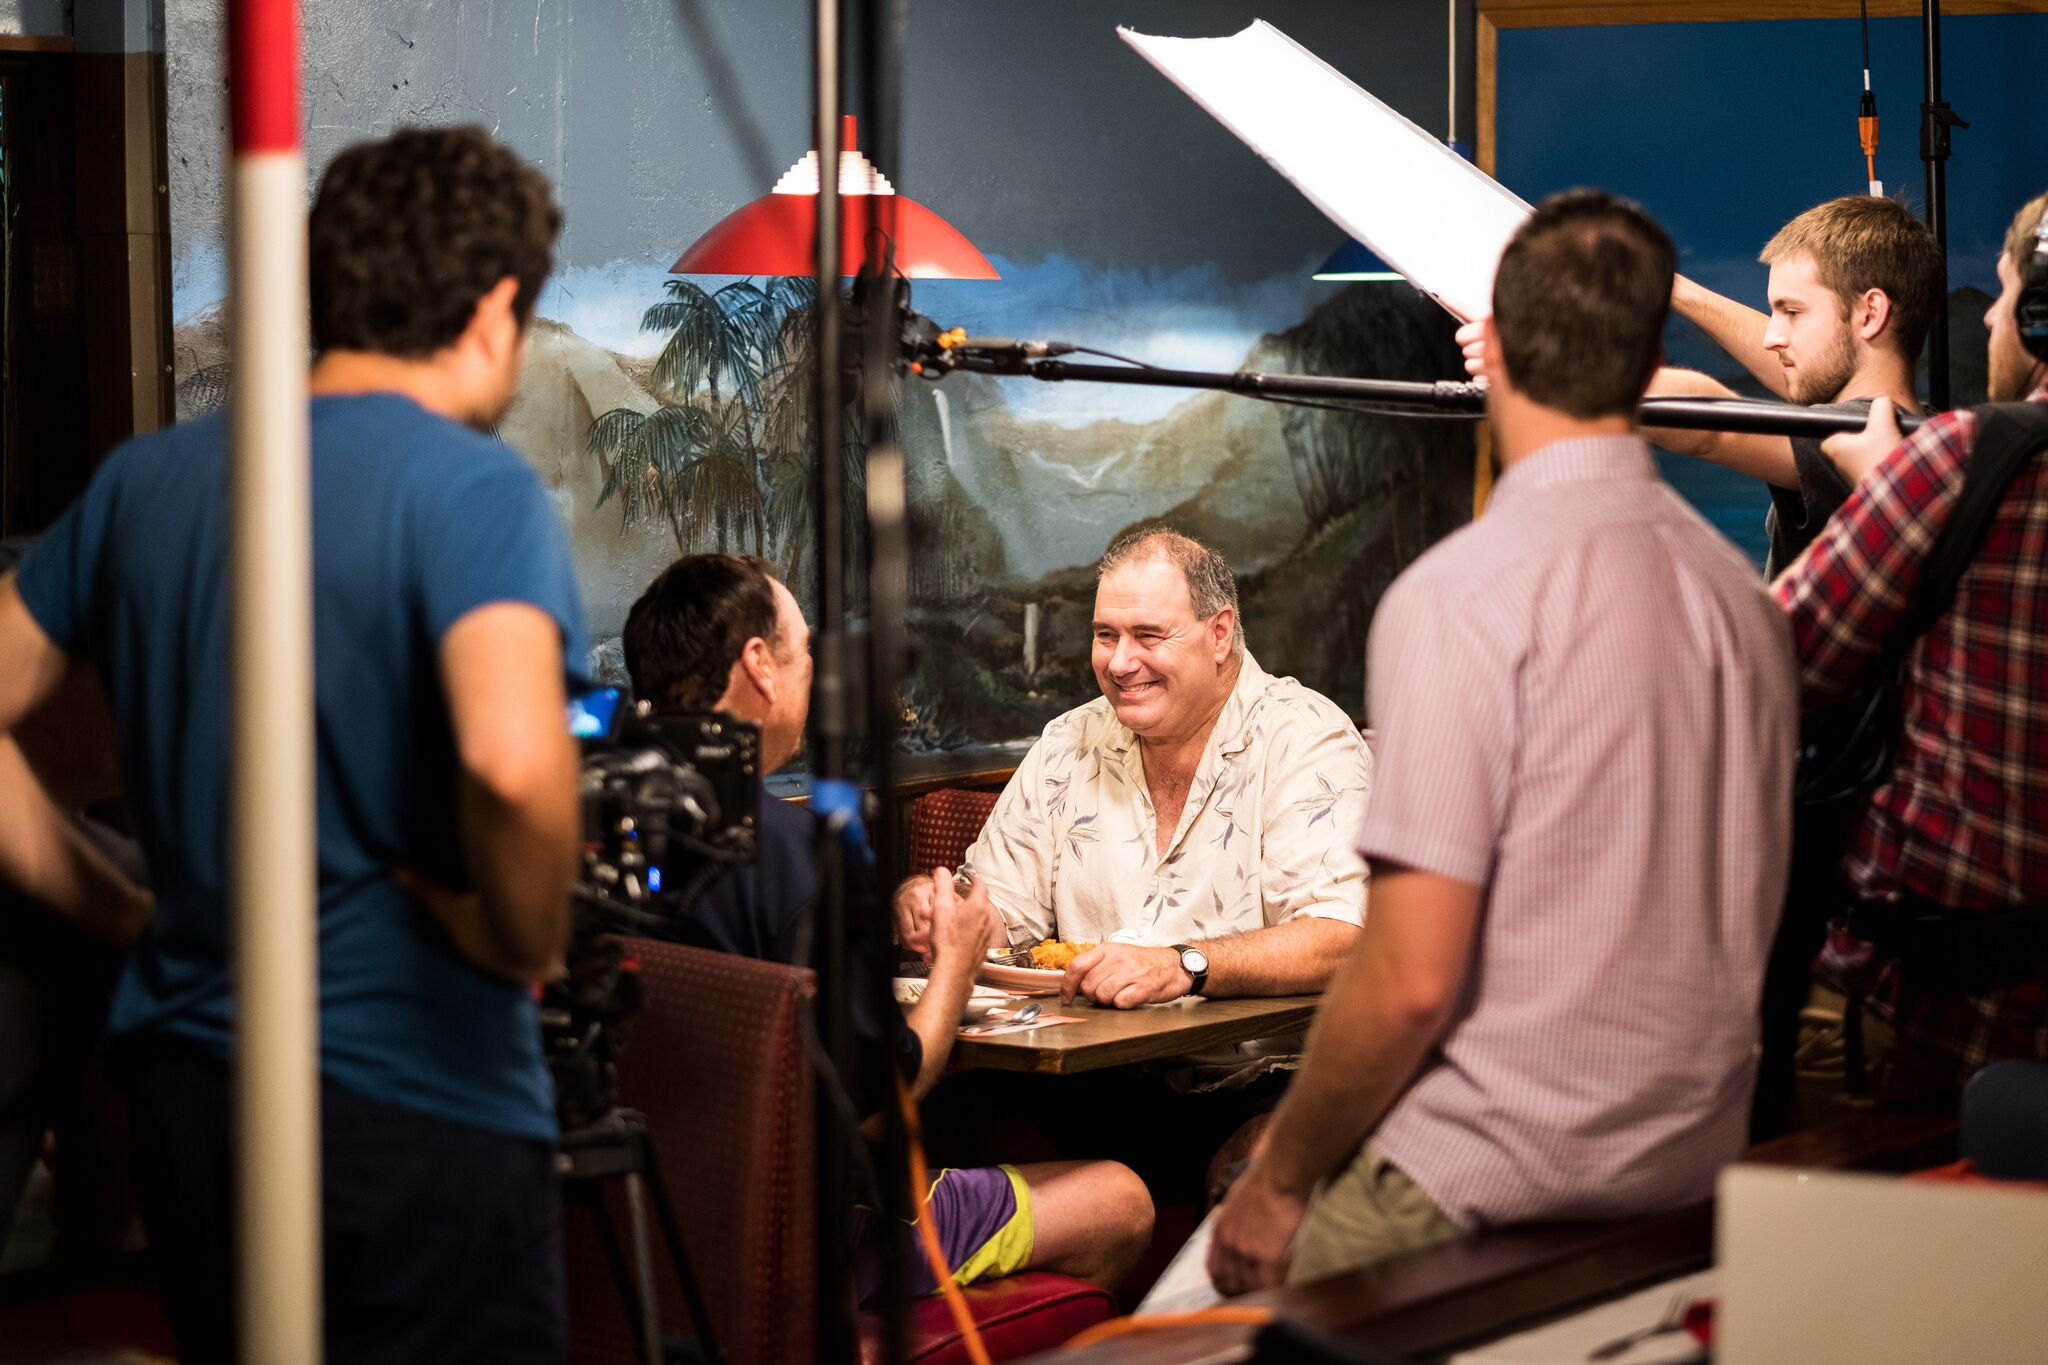 Actor/Comedian Frank Santorelli rehearsing a scene at Kowloon Restaurant.